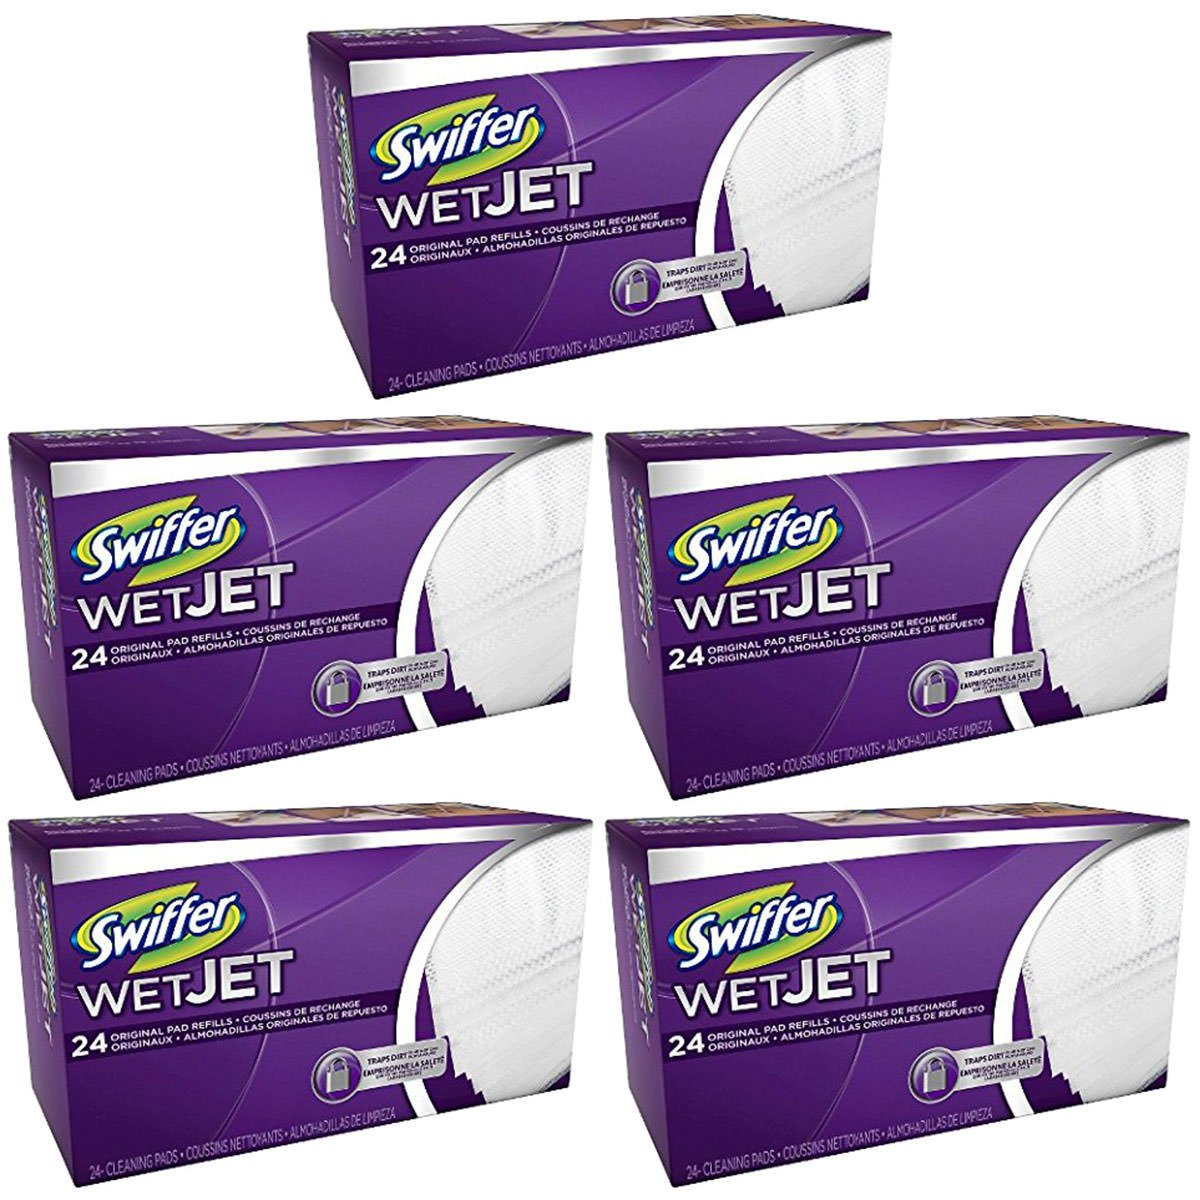 Swiffer WetJet Hardwood Floor, Wet Jet Spray Mop Pad Refills, Original Scent Refill Cloth, 5 Pack (24 Count)